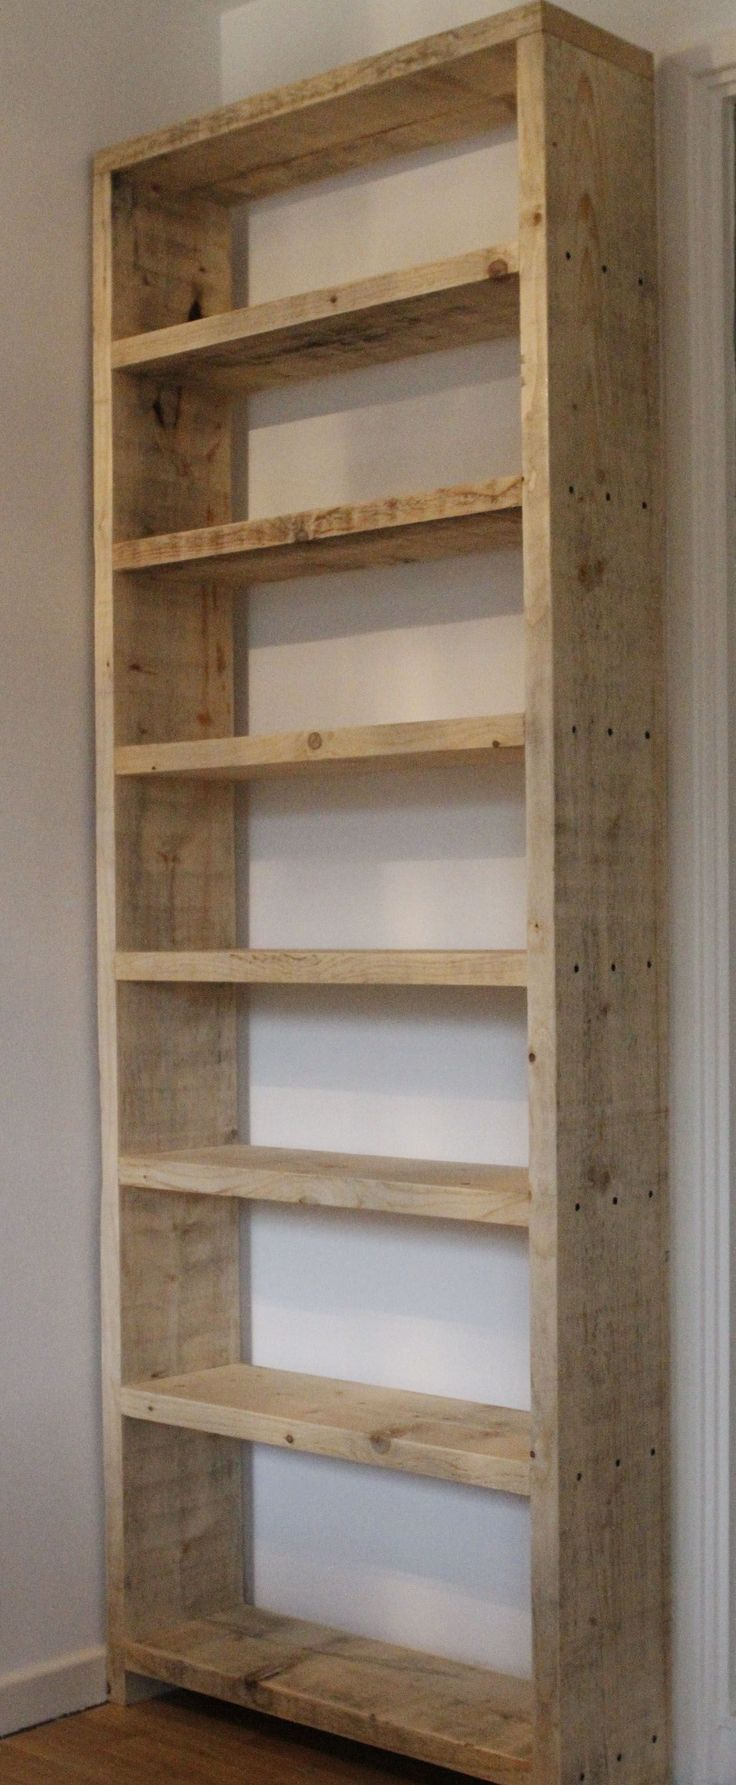 Woodworking projects book shelves woodworking projects for Wood craft shelves